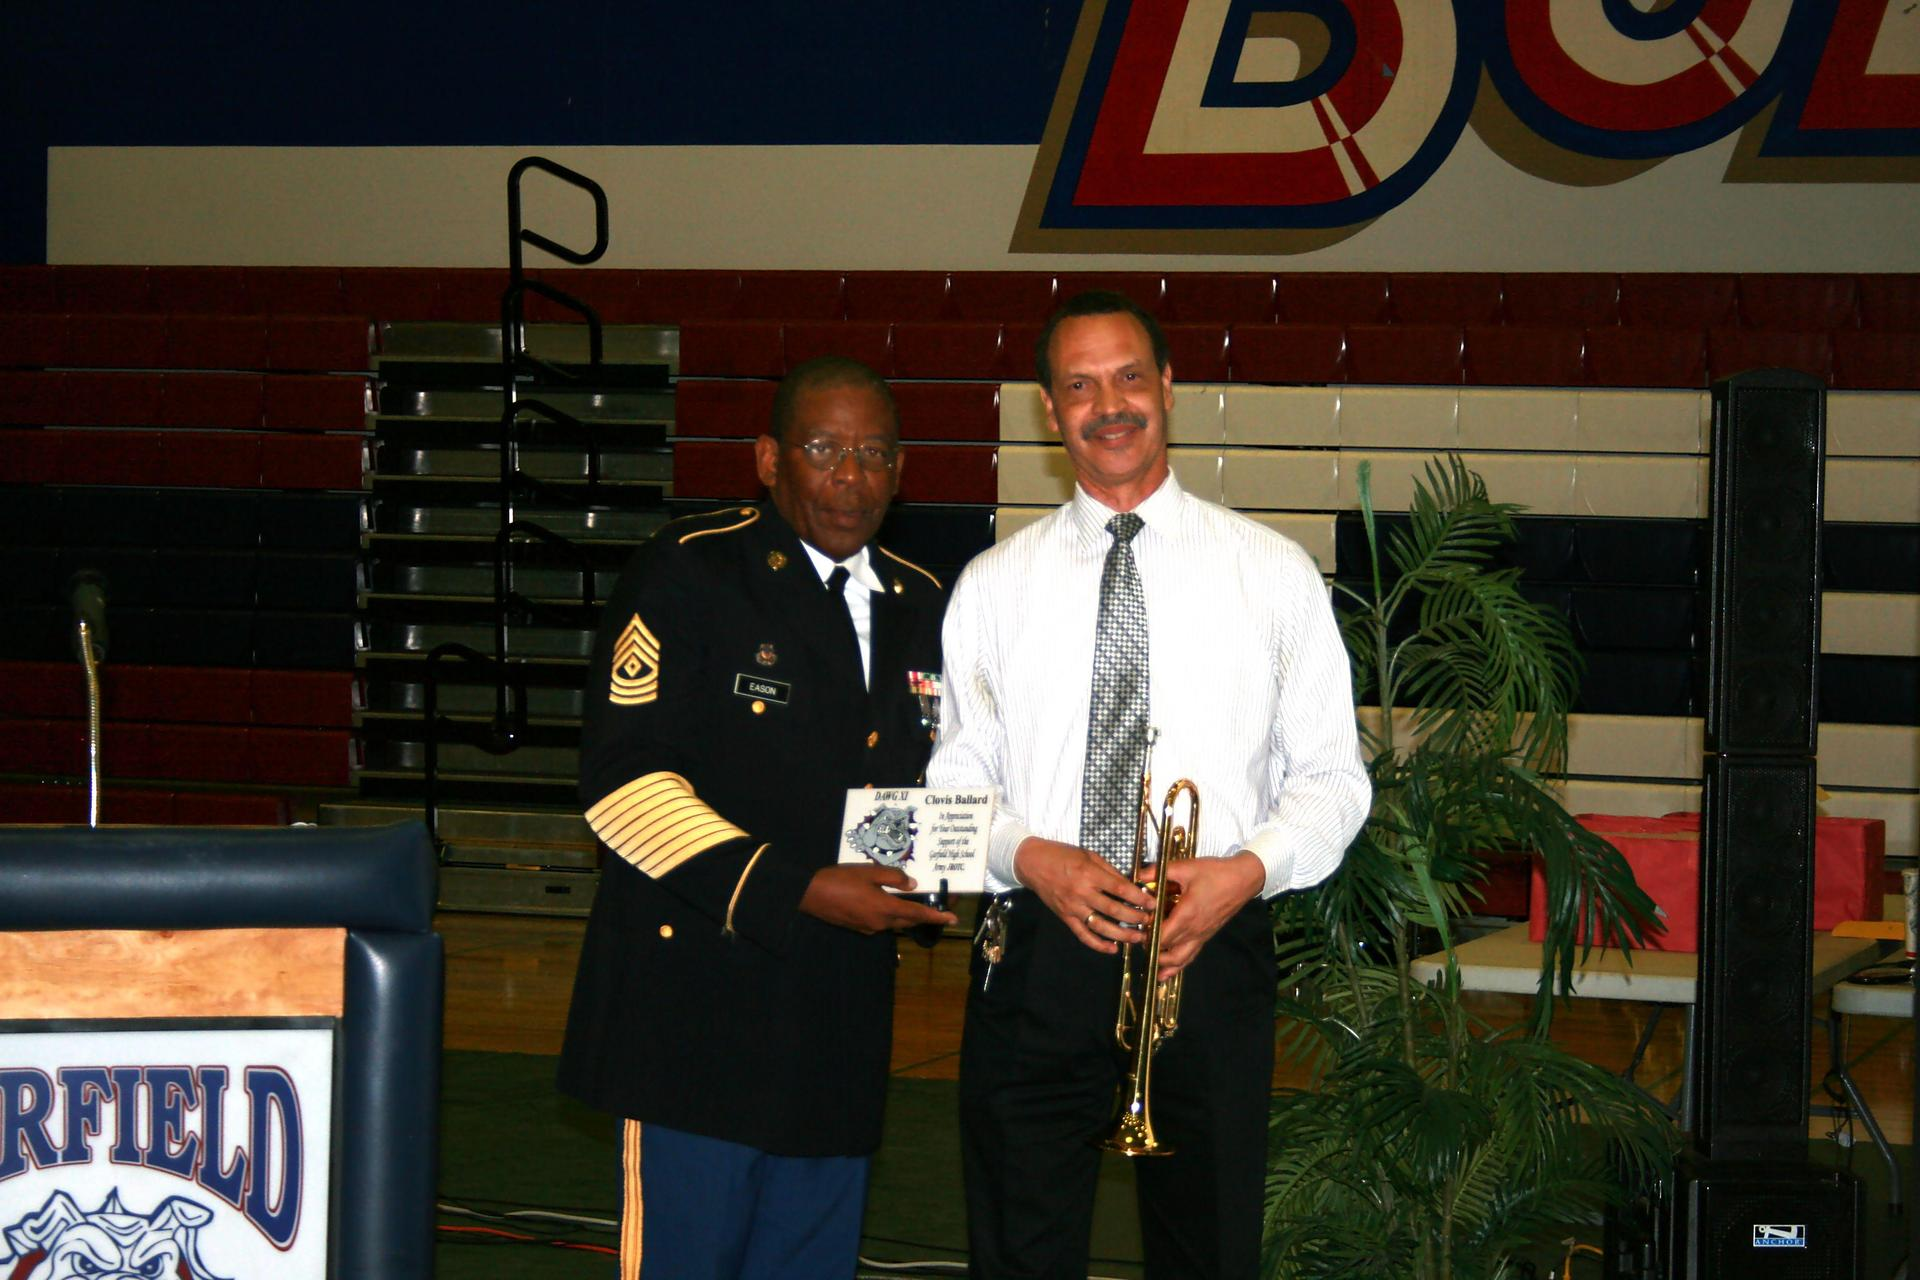 Sgt. Eason and Mr. Ballard